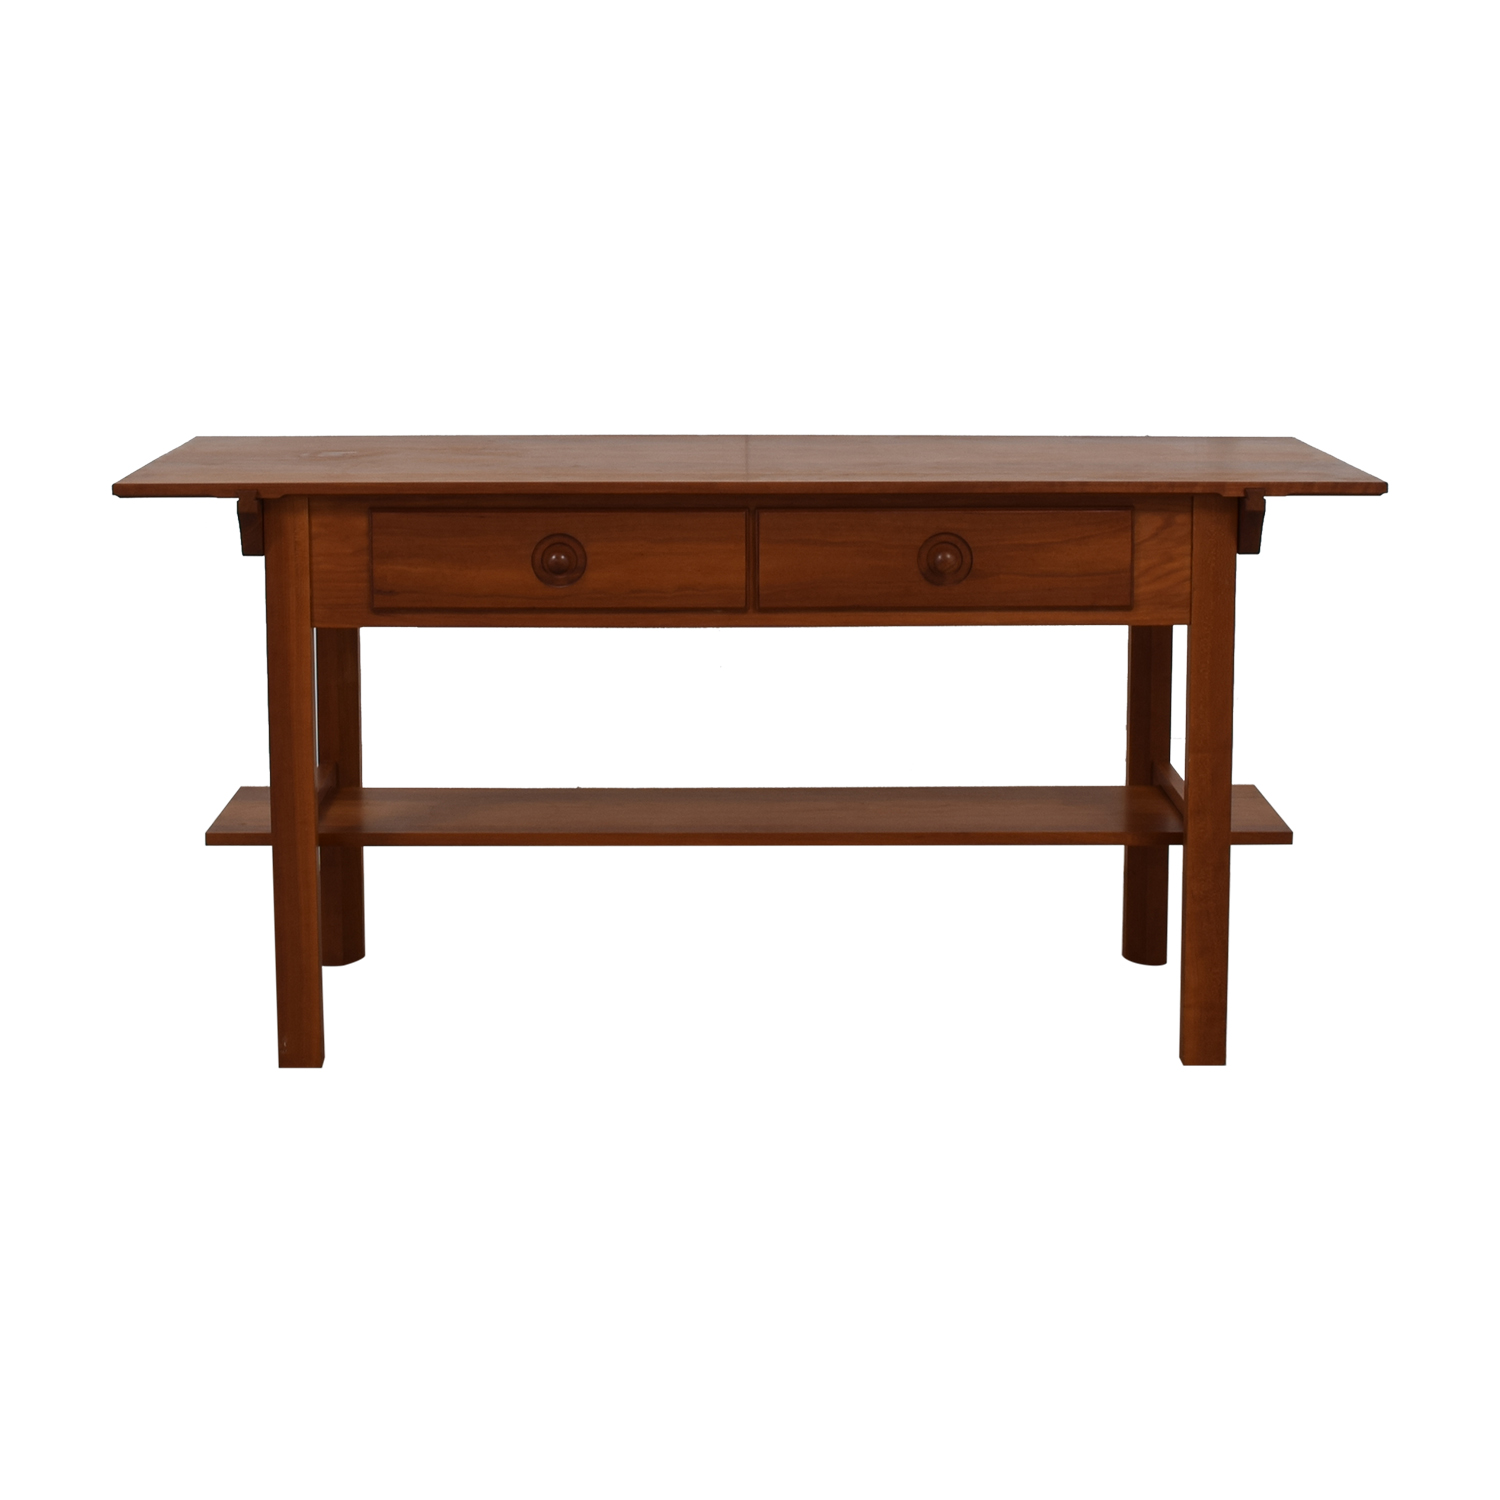 shop Scott Jordon Wood Two-Drawer Utility Table Scott Jordon Utility Tables